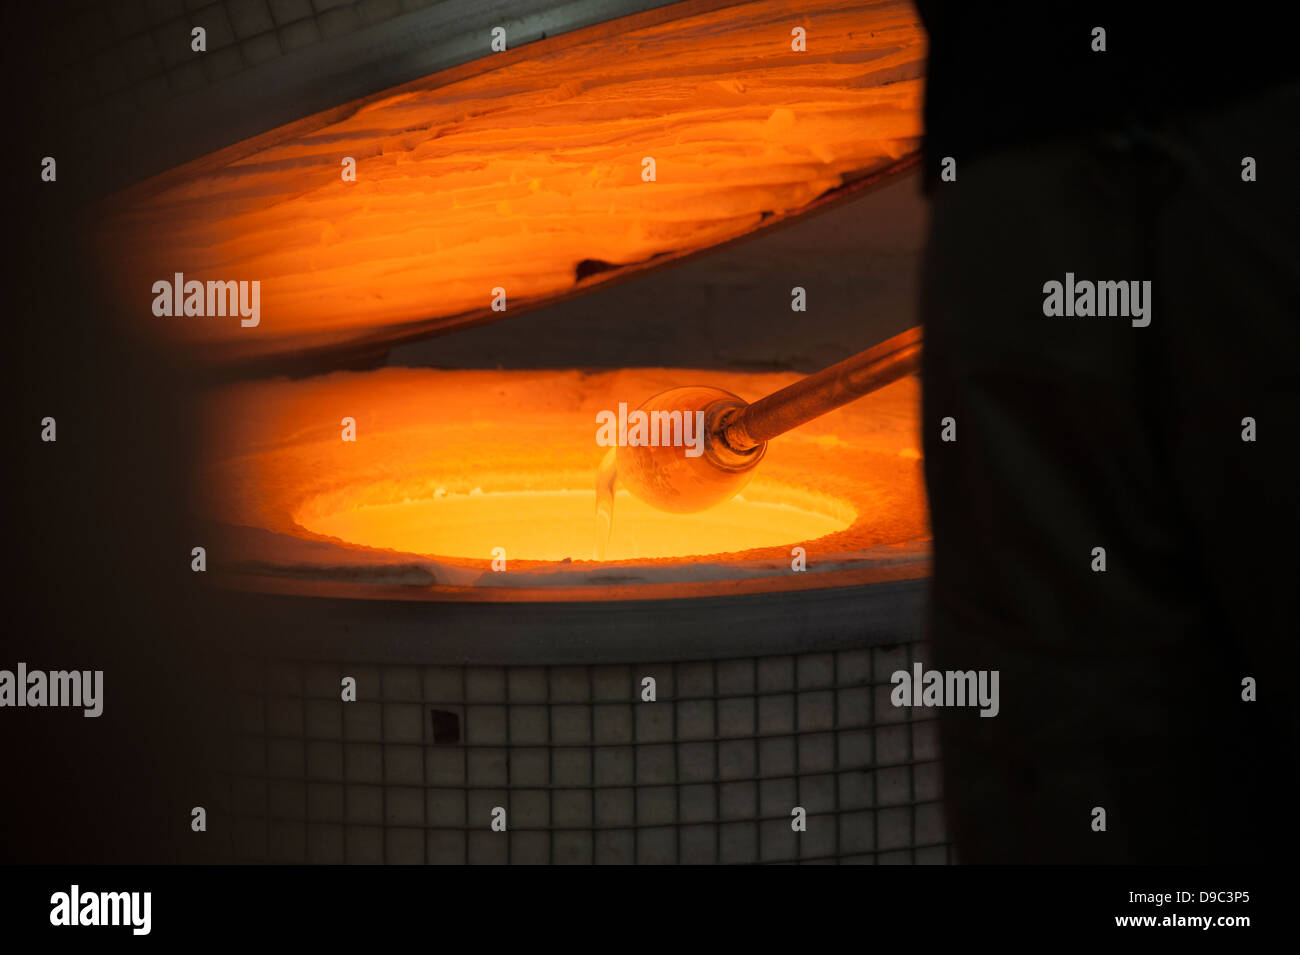 Molten Liquid Glass in Furnace Cupola Blowing - Stock Image